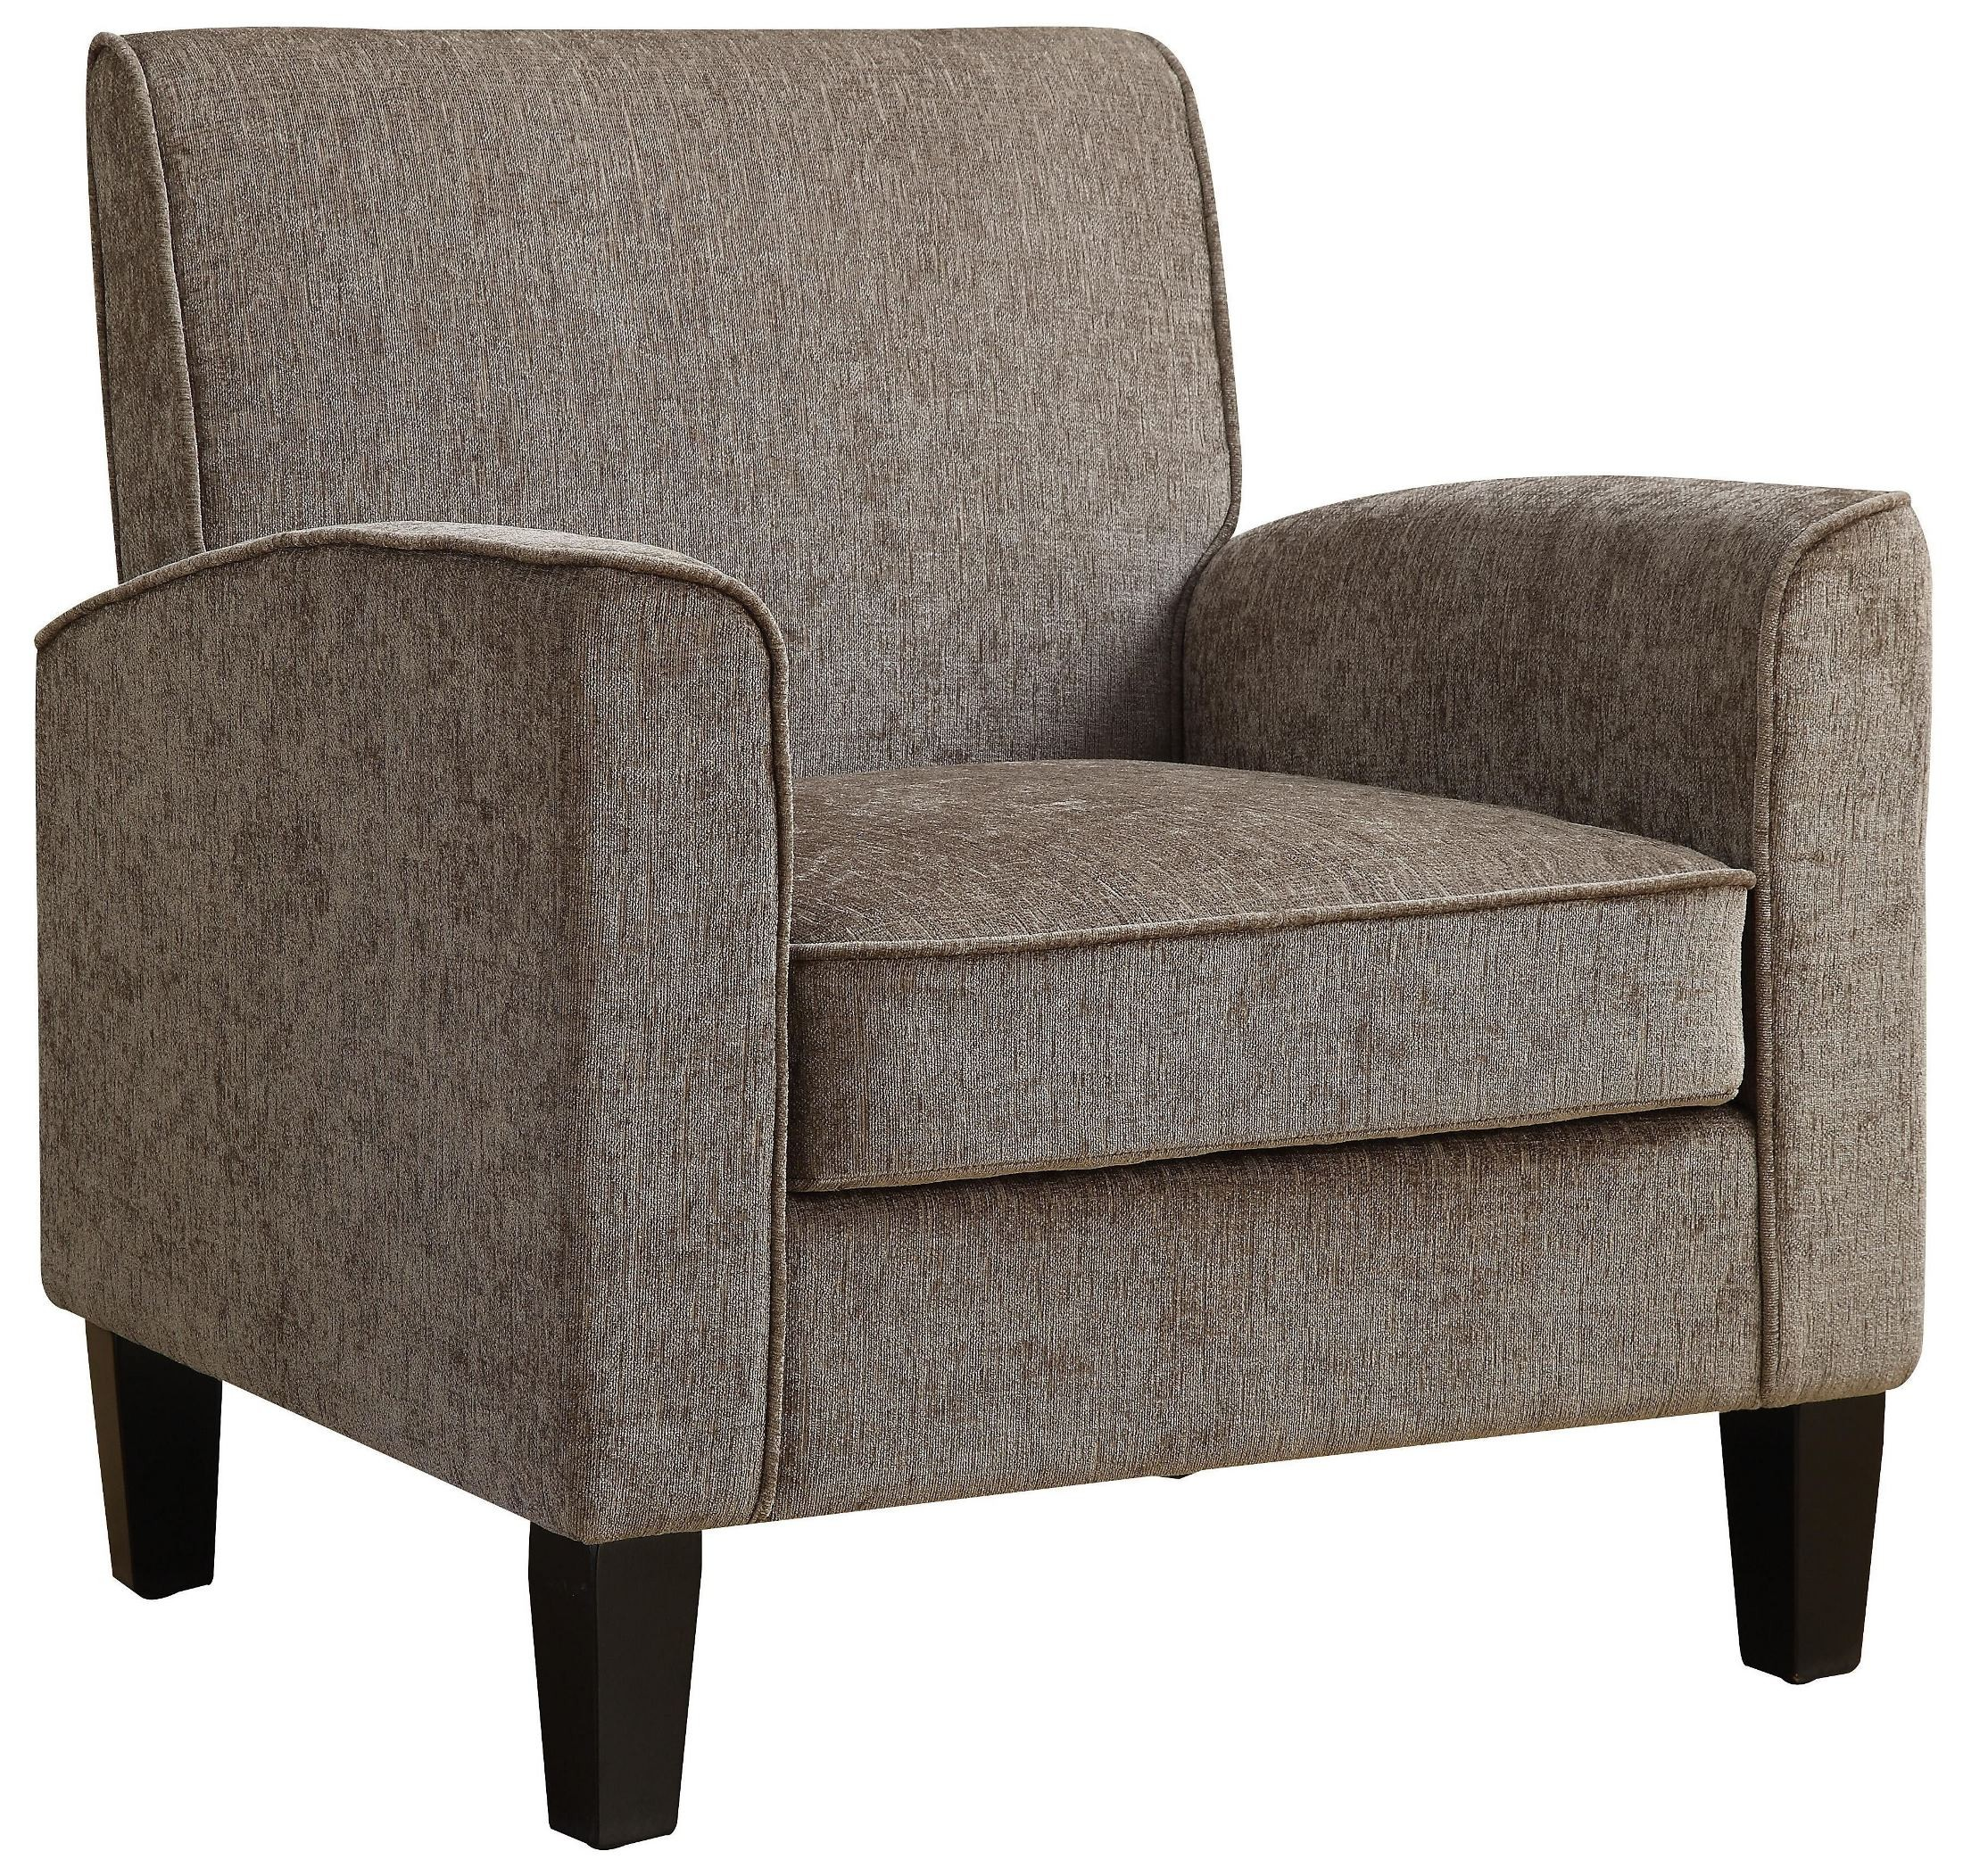 Grey Upholstered Chair Gray Upholstered Accent Chair From Pulaski Coleman Furniture